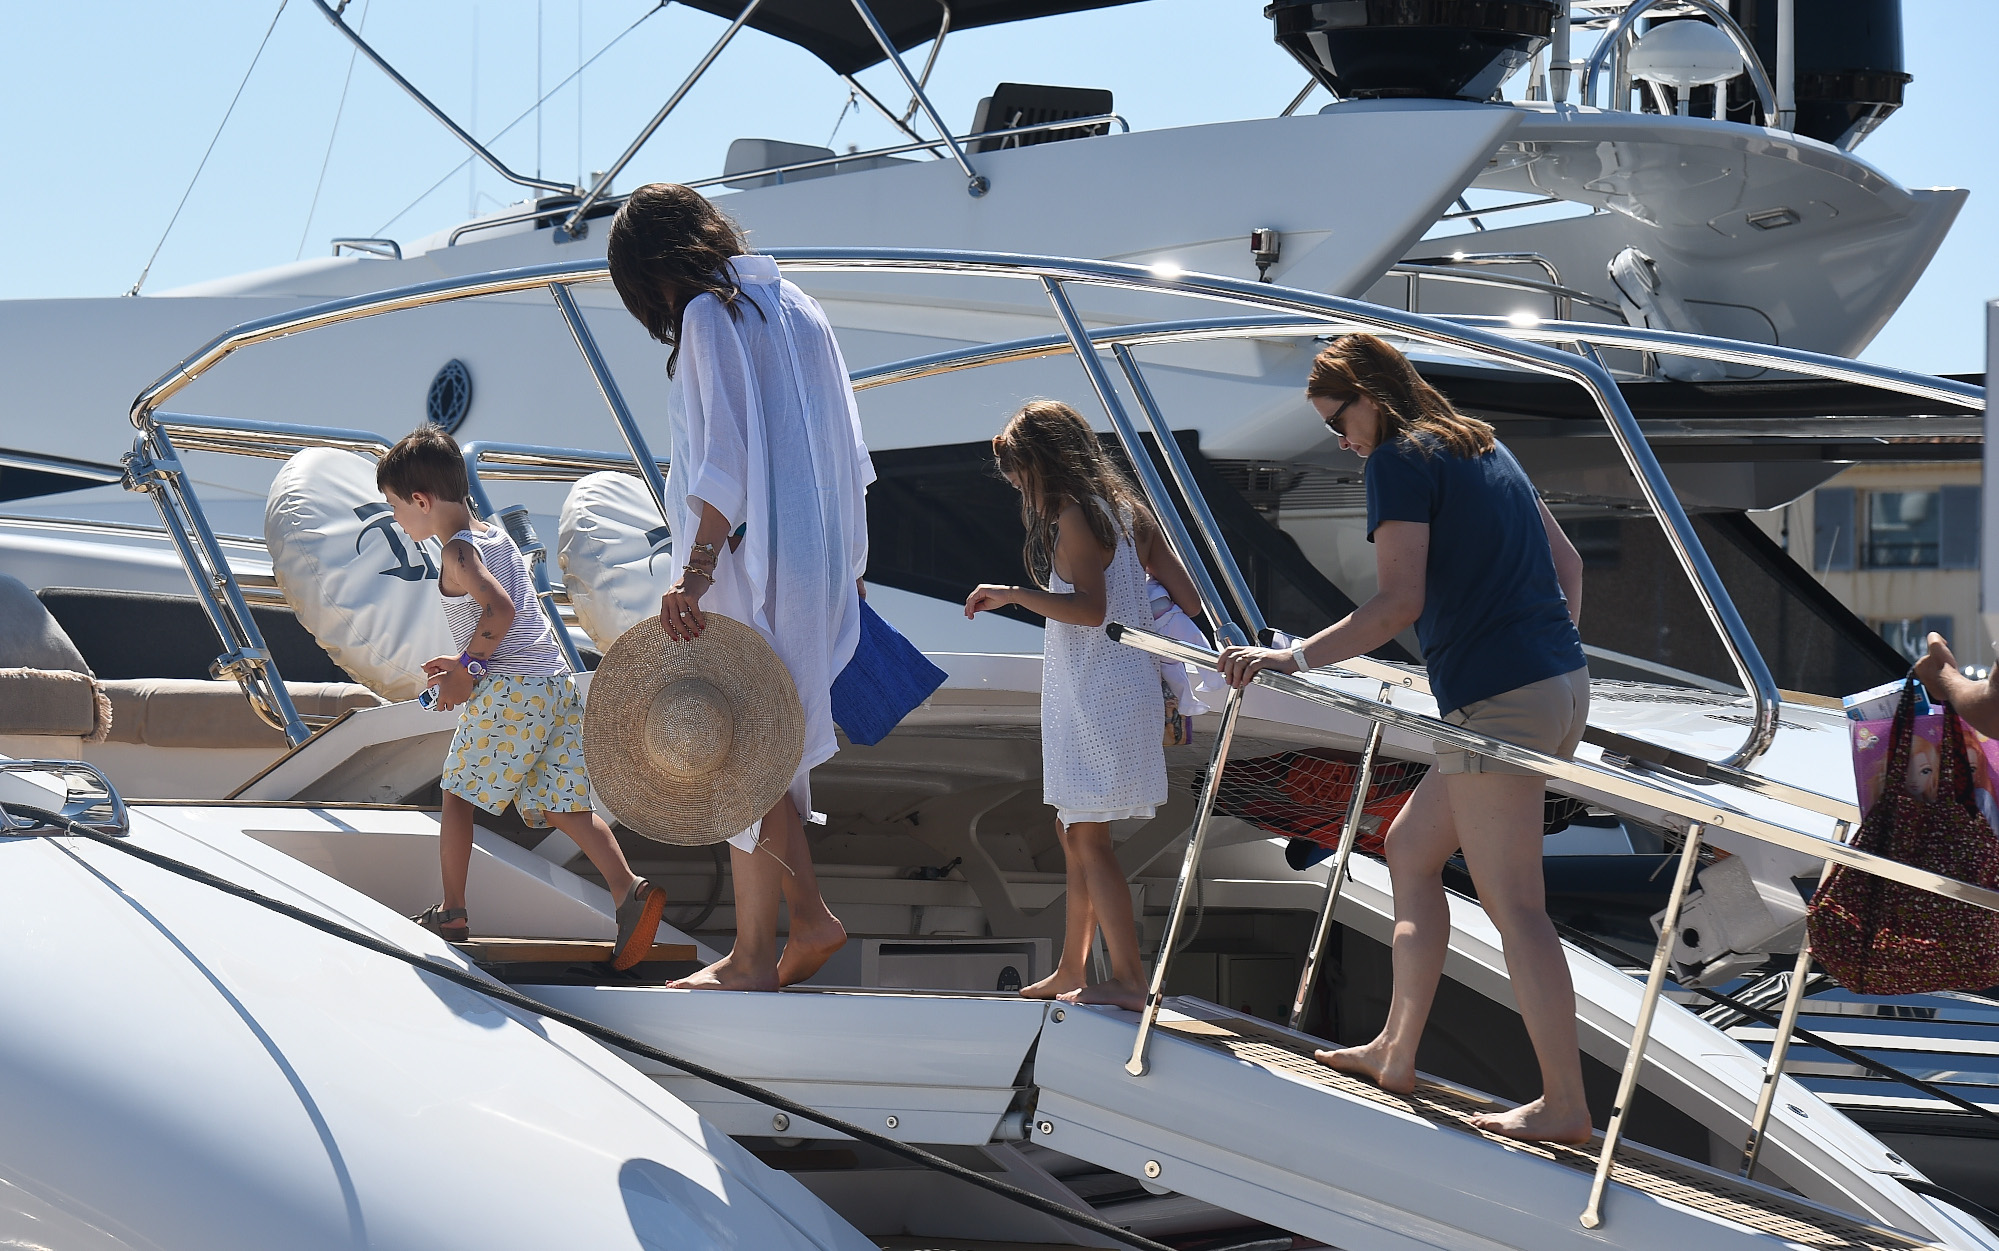 Pregnant Charlotte Casiraghi and Dimitri Rassam are seen boarding a yacht in St Tropez harbour, France  Pictured: Charlotte Casiraghi Ref: SPL5011830 230718 NON-EXCLUSIVE Picture by: Neil Warner / SplashNews.com  Splash News and Pictures Los Angeles: 310-821-2666 New York: 212-619-2666 London: 0207 644 7656 Milan: +39 02 4399 8577 Sydney: +61 02 9240 7700 photodesk@splashnews.com  World Rights